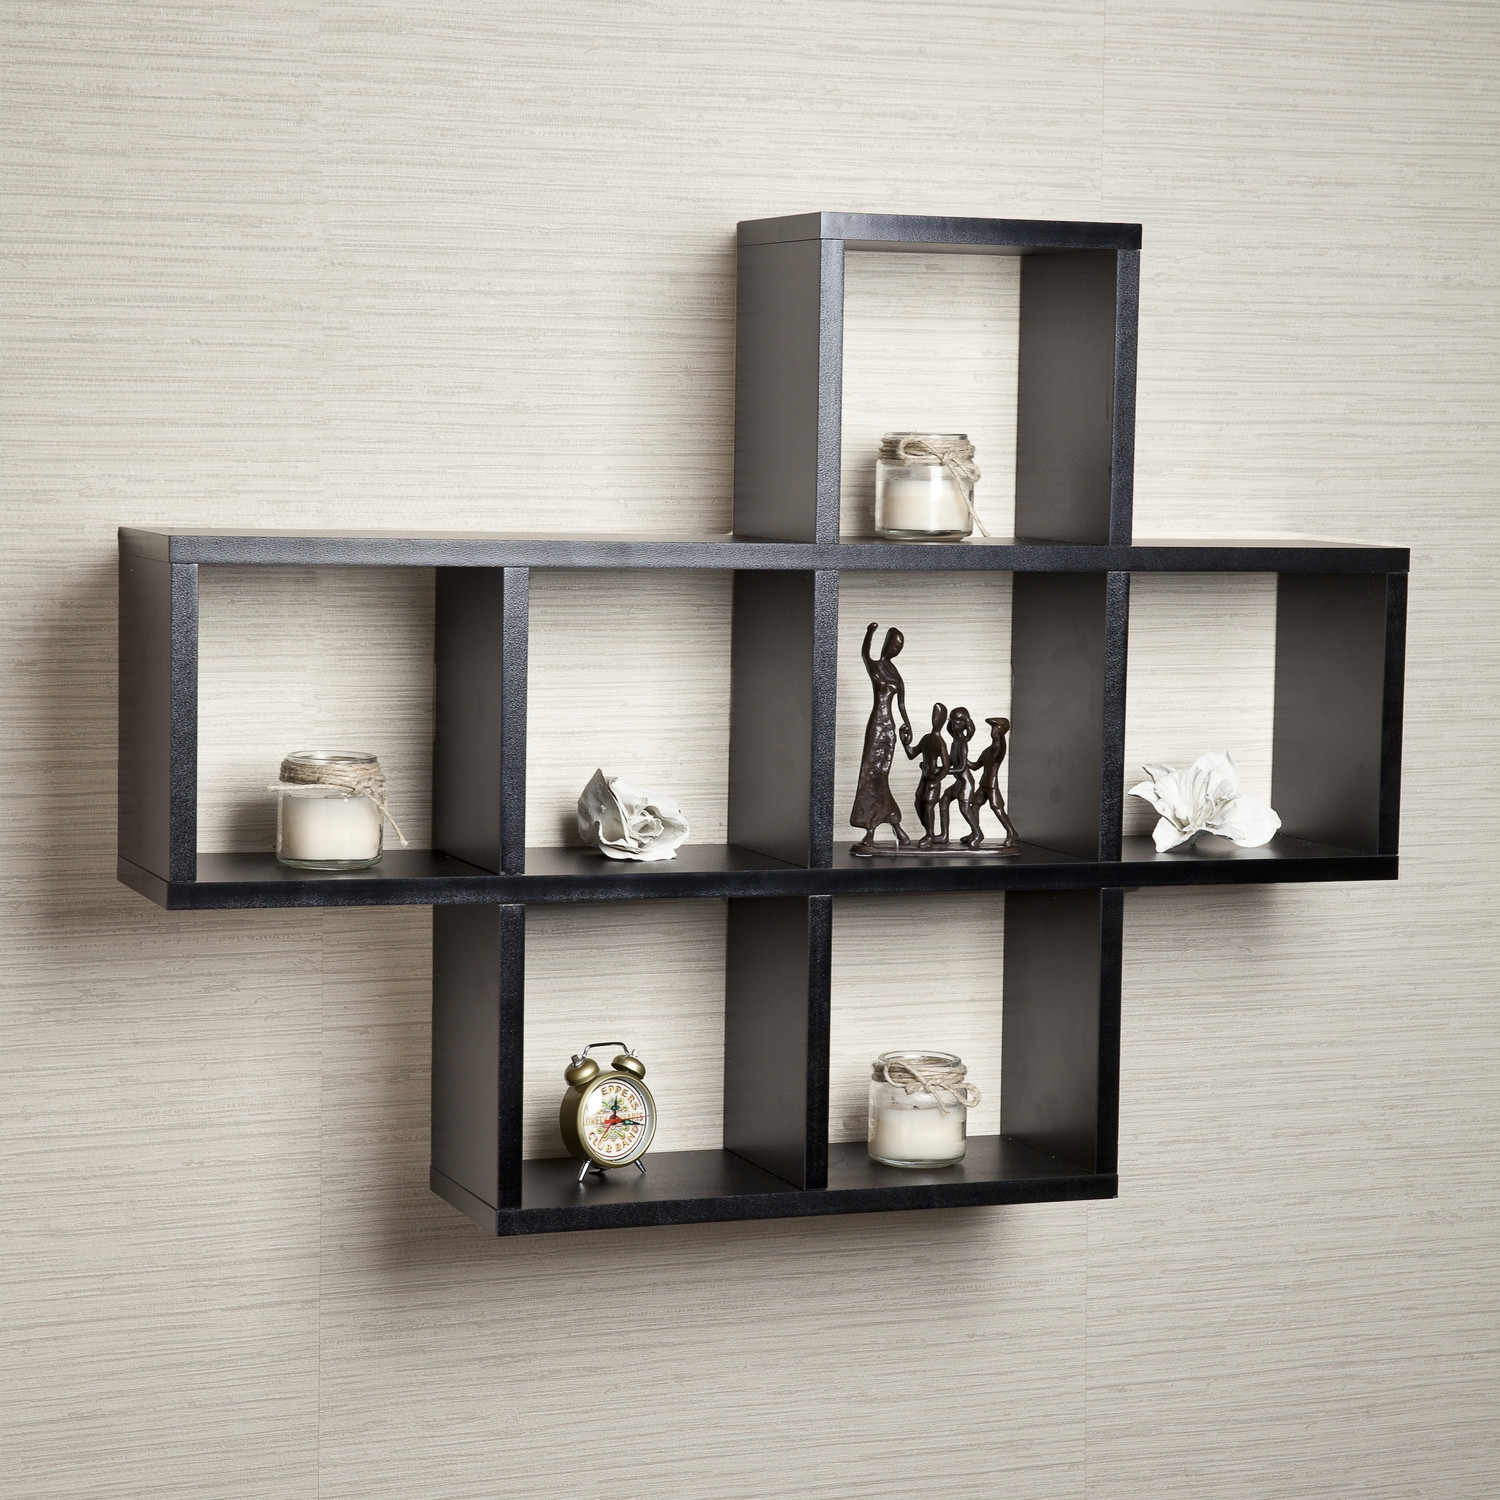 Popular Photo of Wall Shelving Units